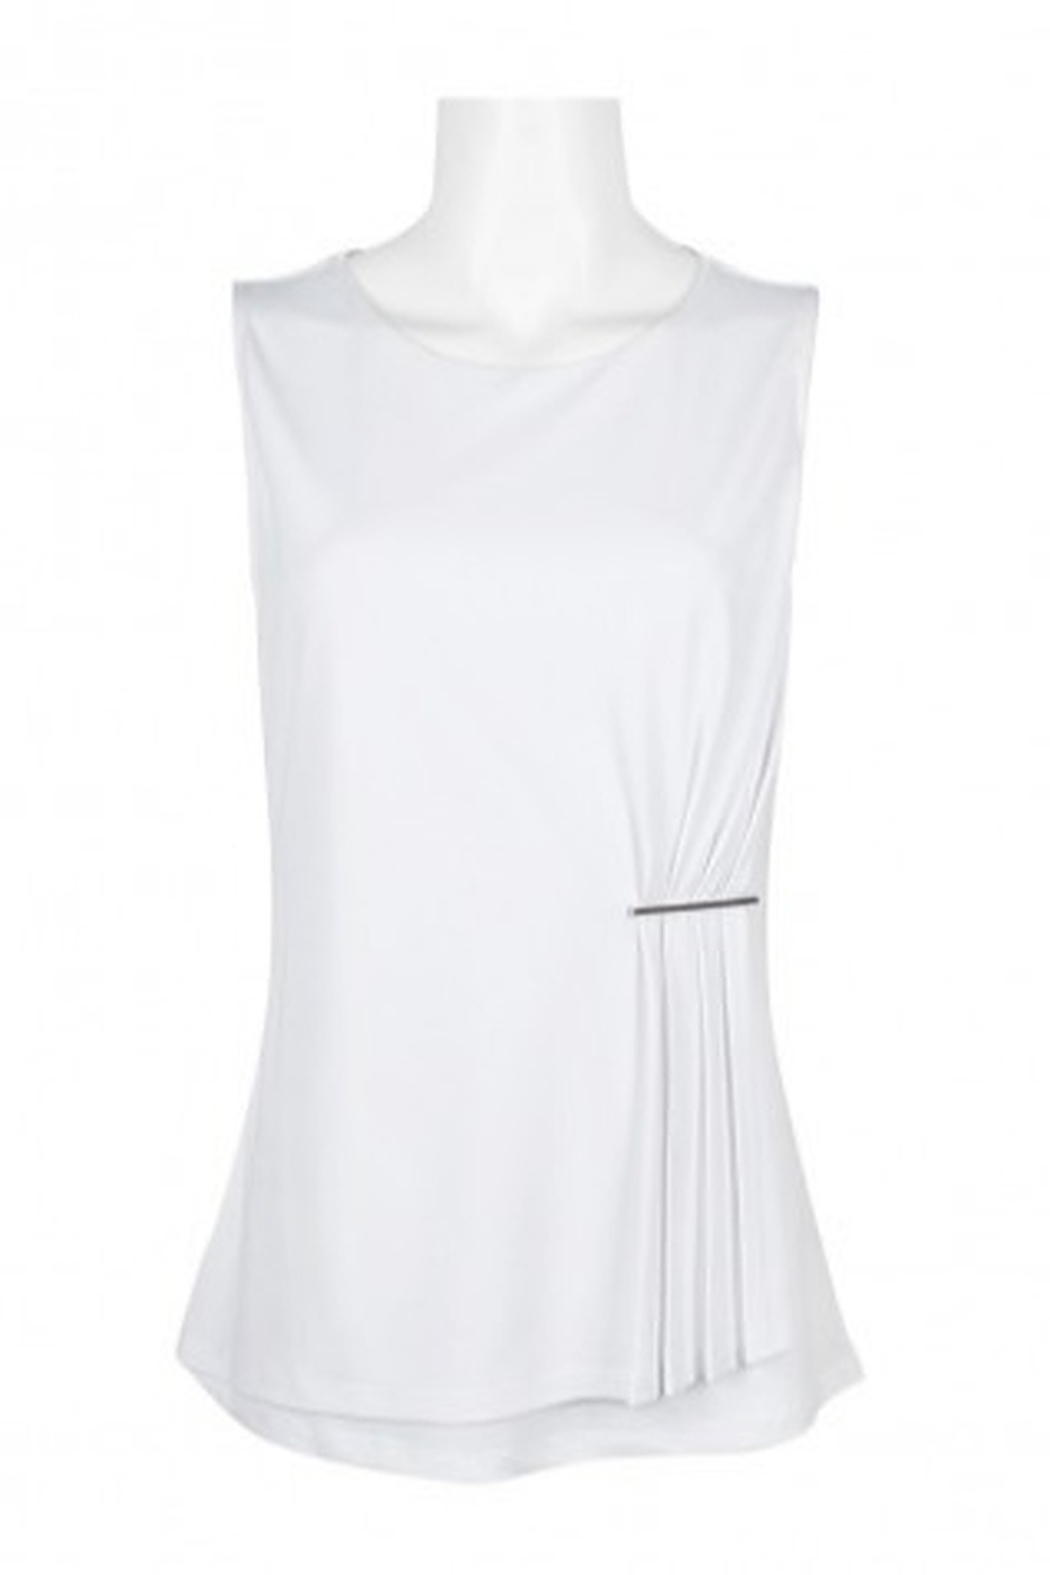 Carre Noir Scoop Neck Sleeveless Pleated Side Solid Jersey Top - Front Cropped Image